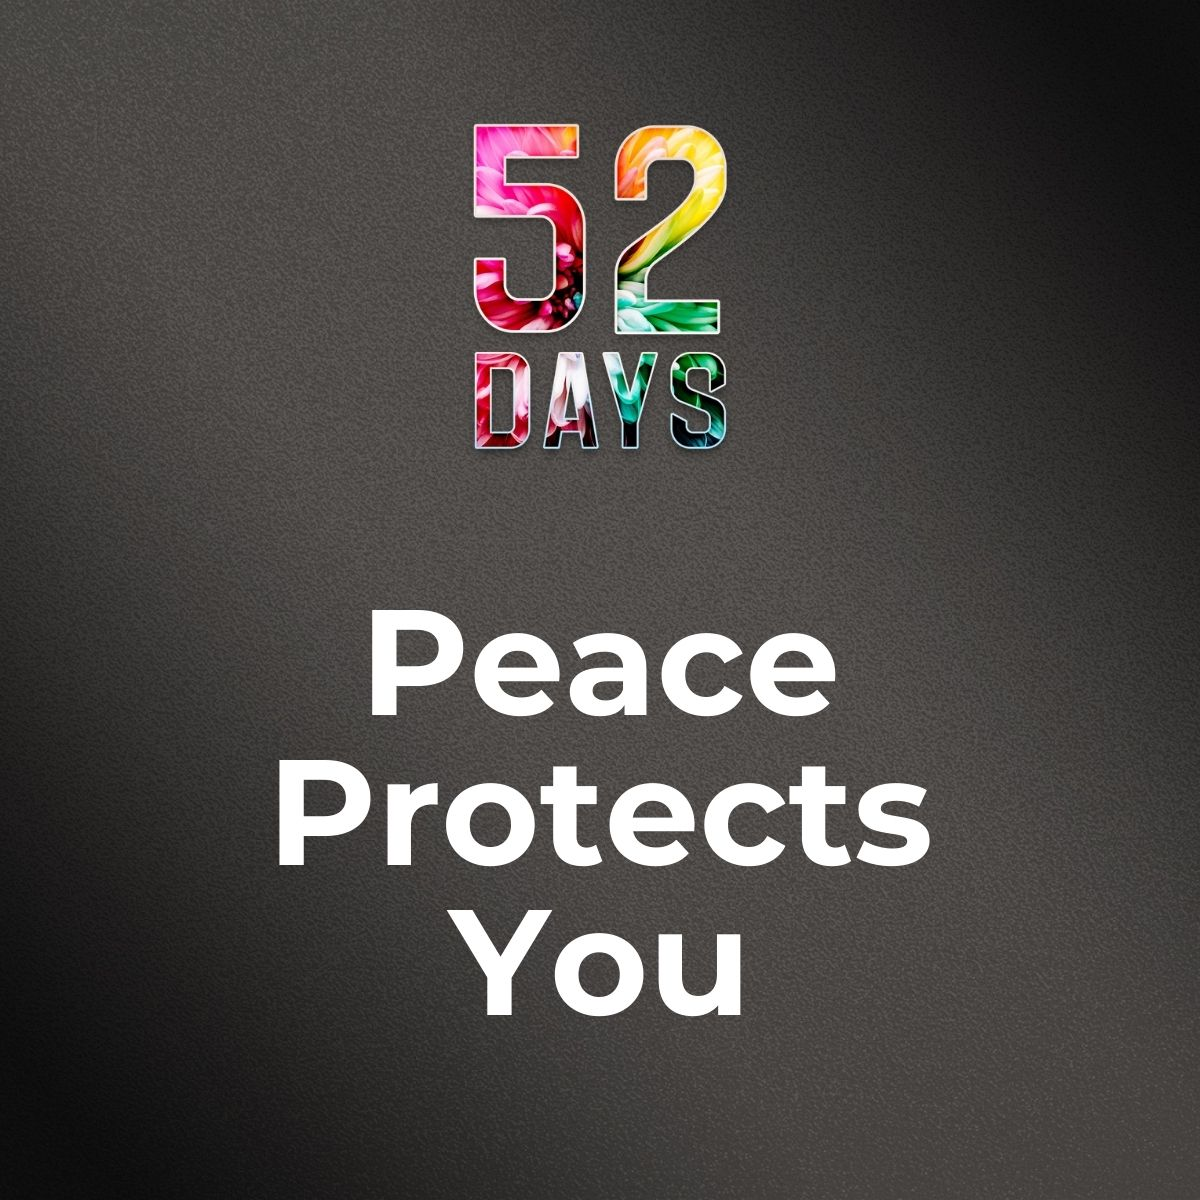 52_Video_TILE_PeaceProects